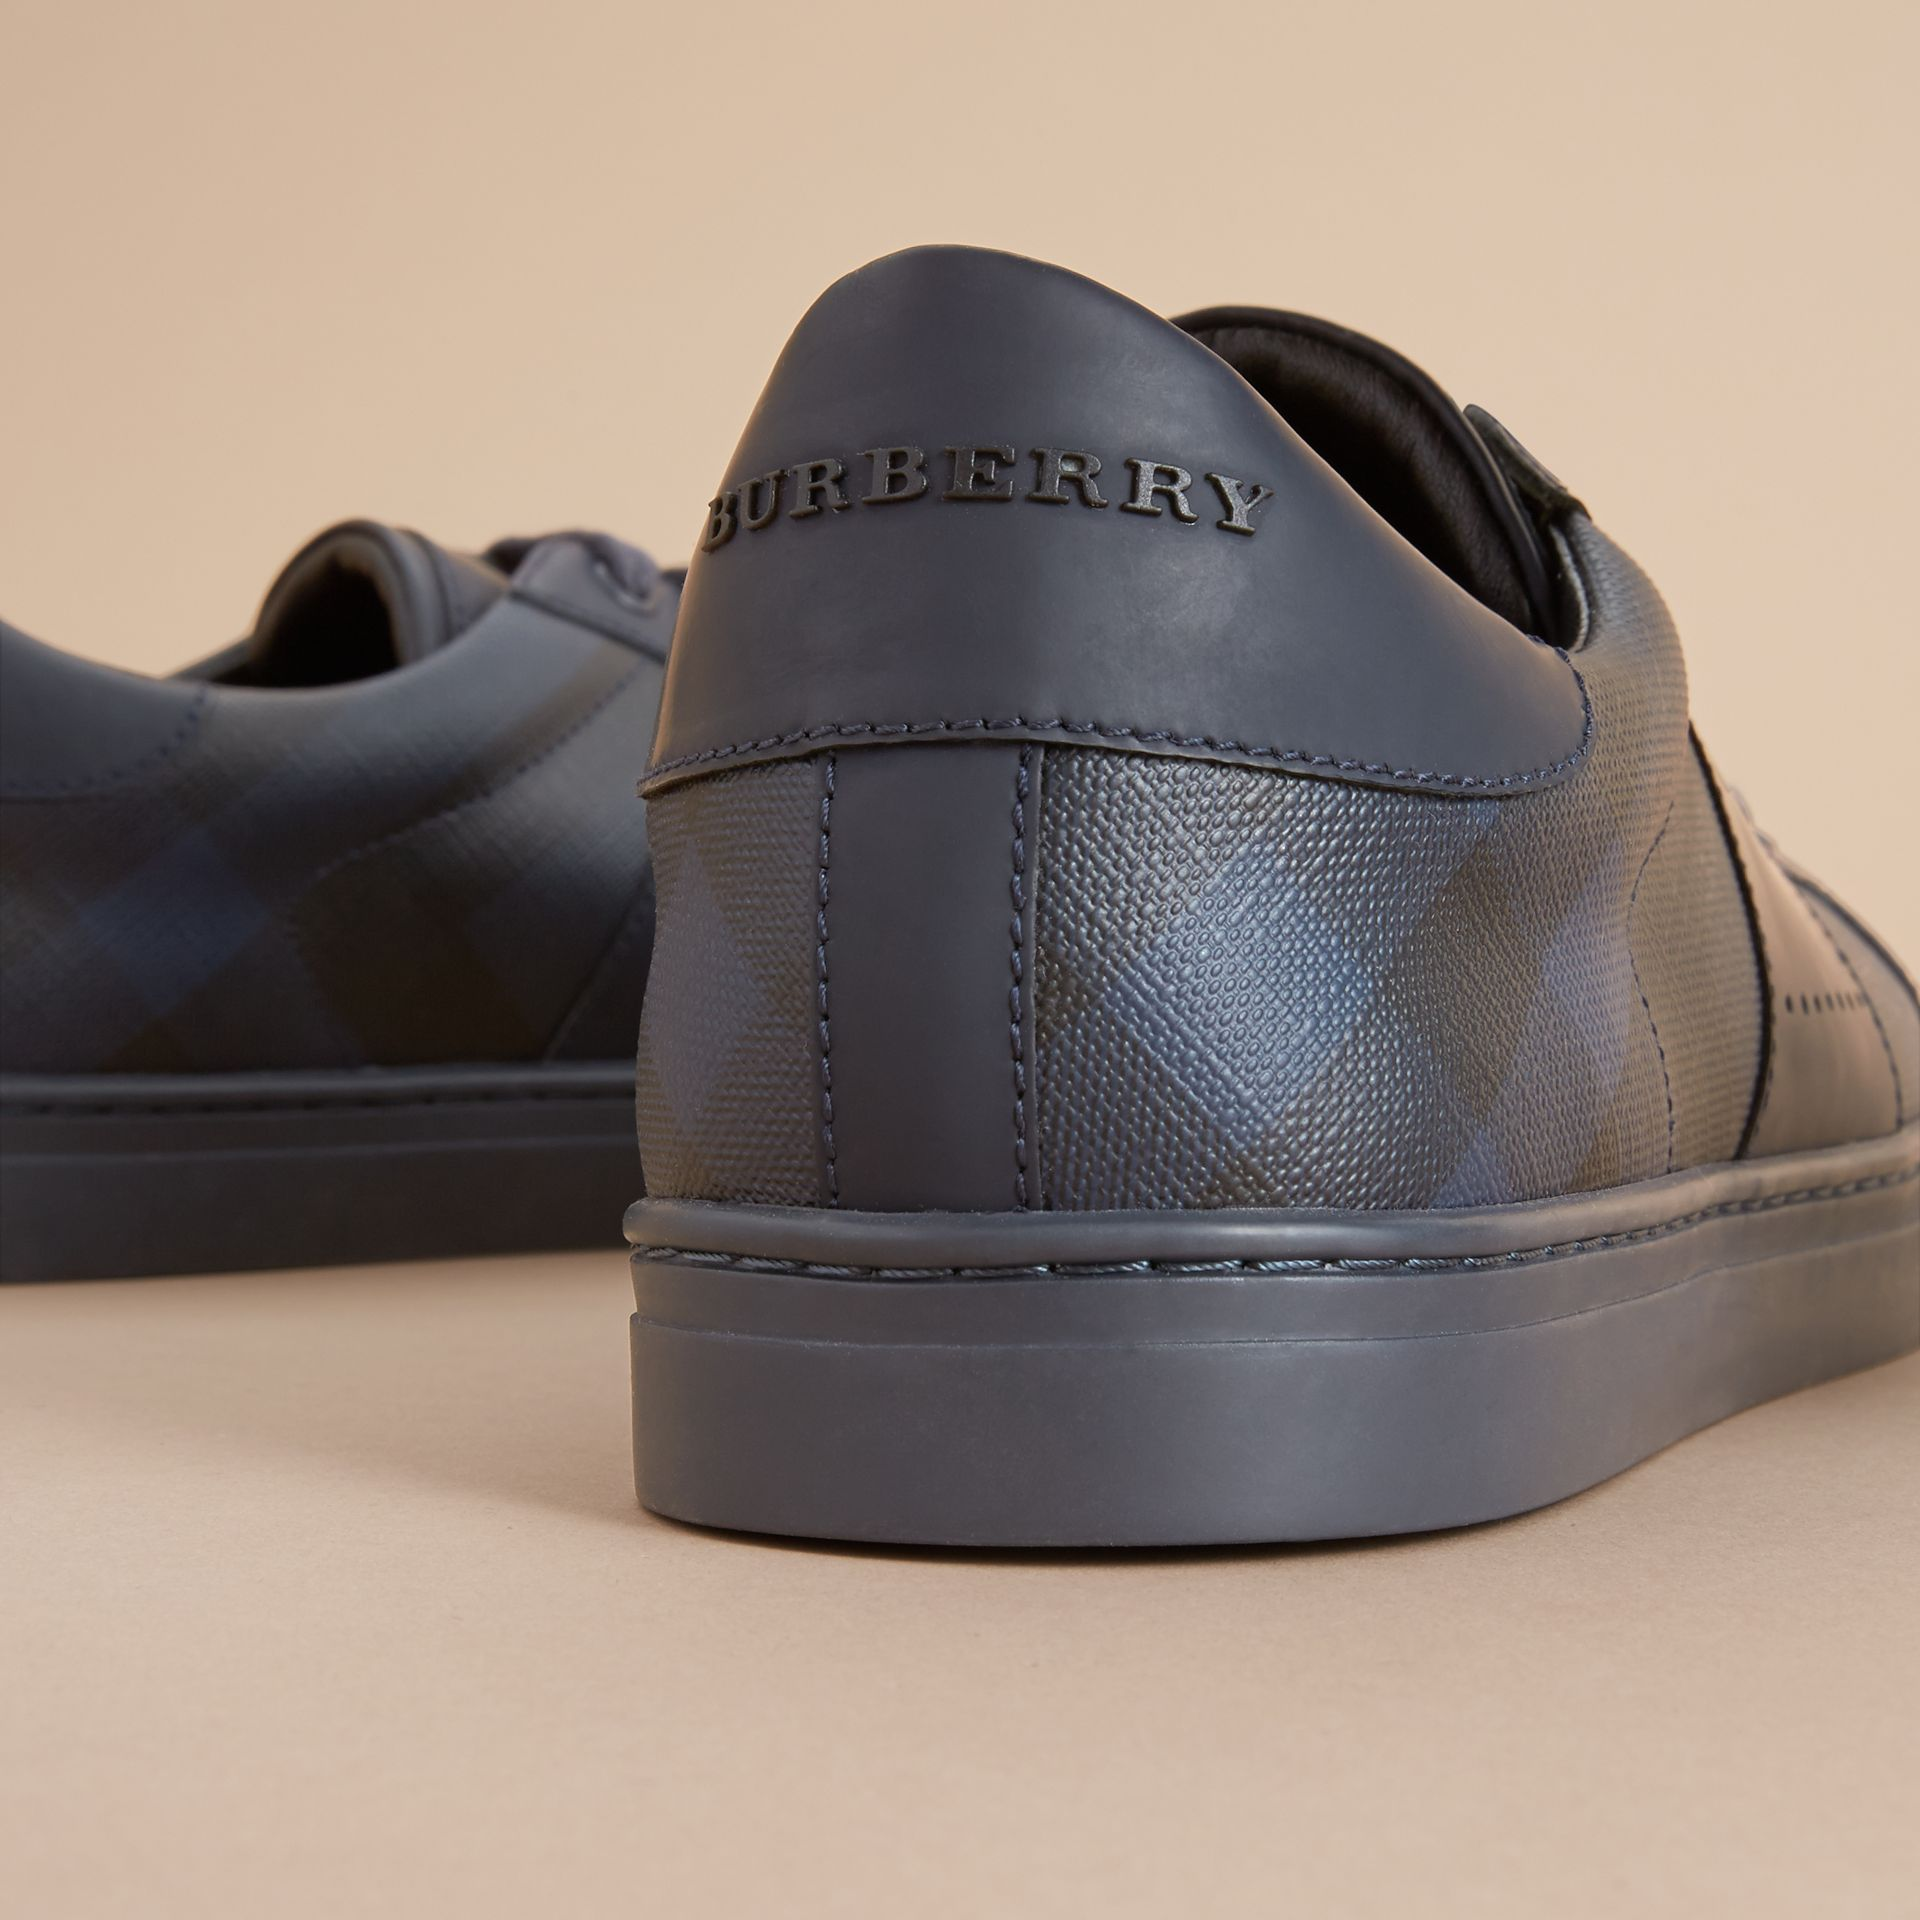 London Check and Leather Sneakers in Navy - Men | Burberry - gallery image 1